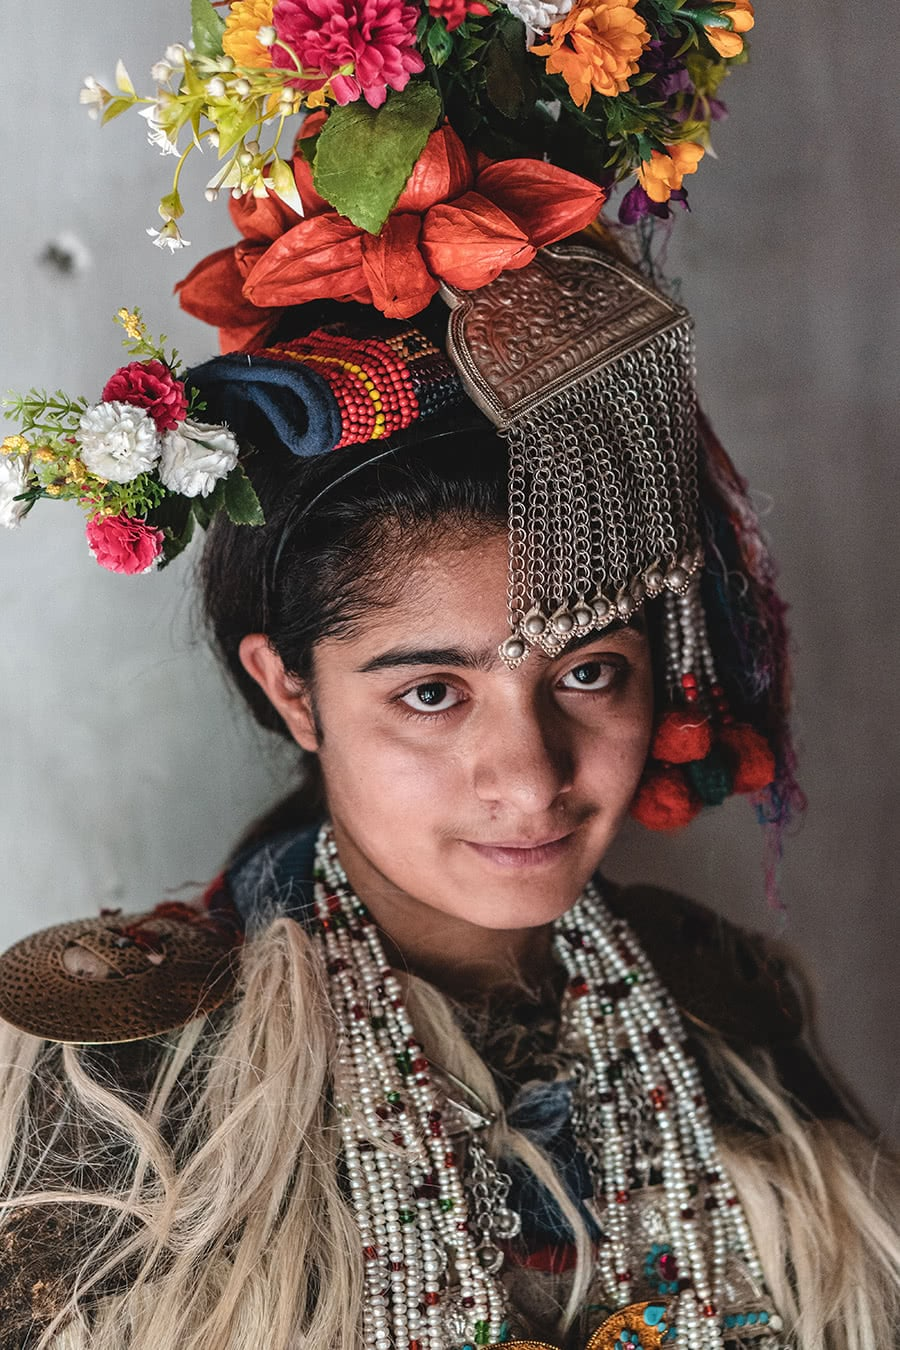 A teenage girl from the Dard Brokpa minority in the Aryan Valley, Ladakh.